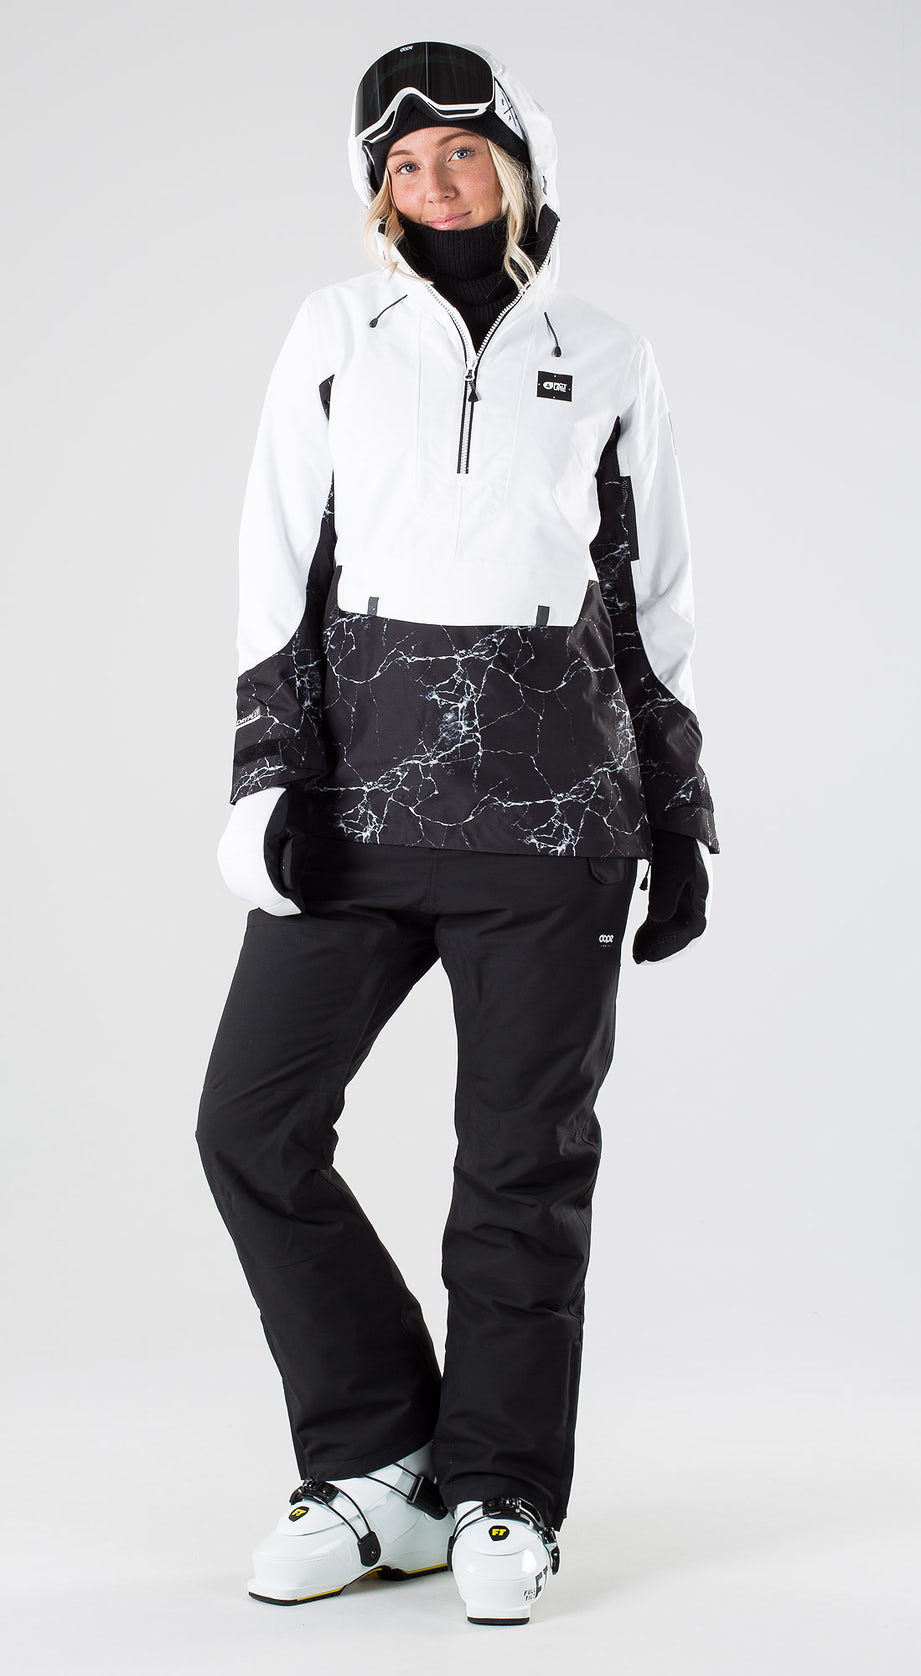 Picture Tanya Marble Ski clothing Multi